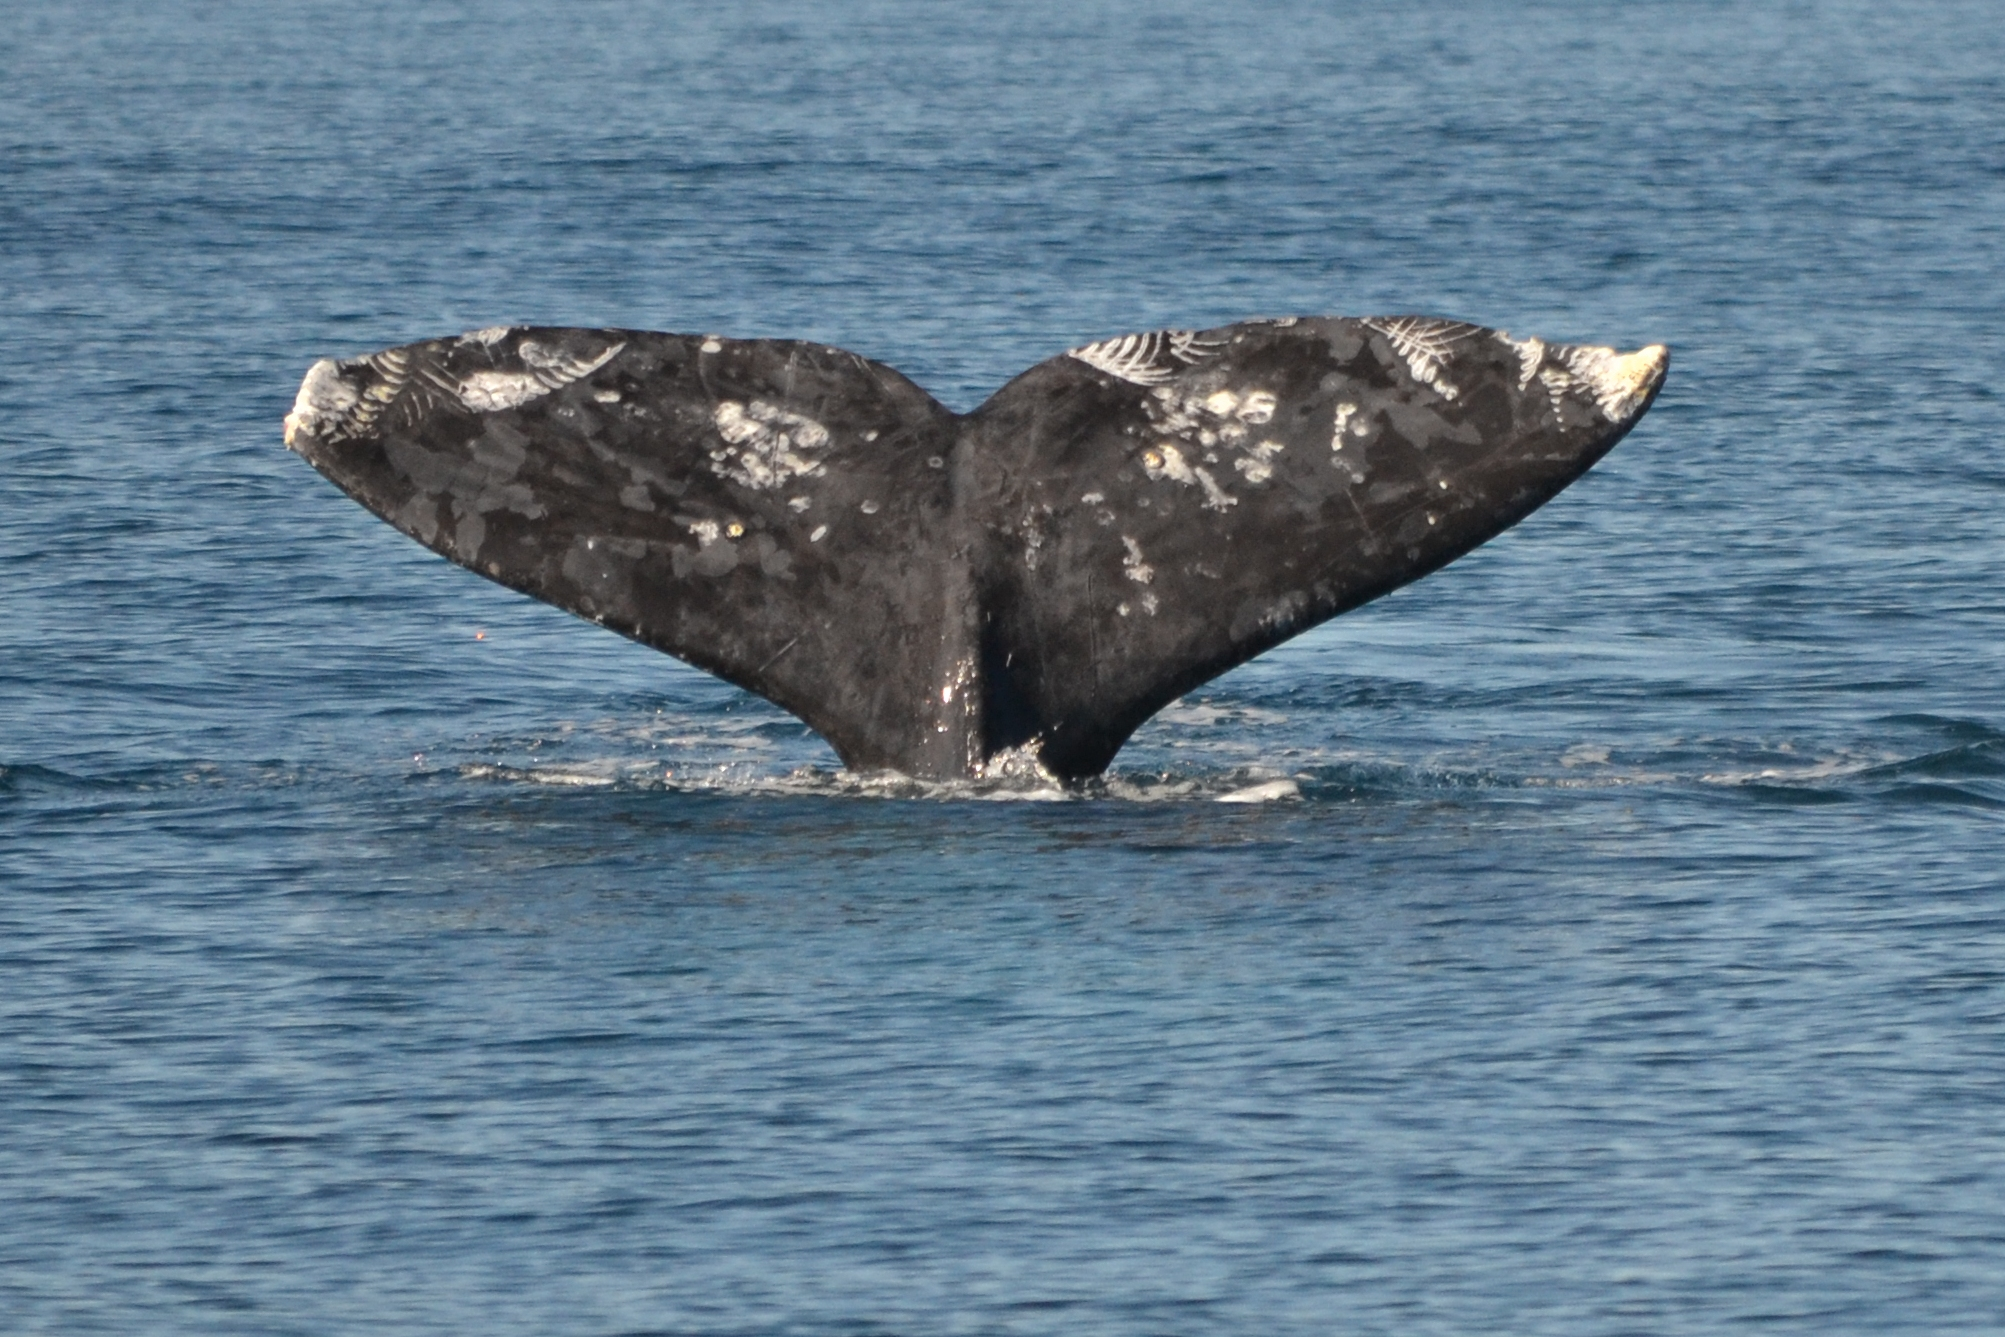 San Diego Whale Watching adventures